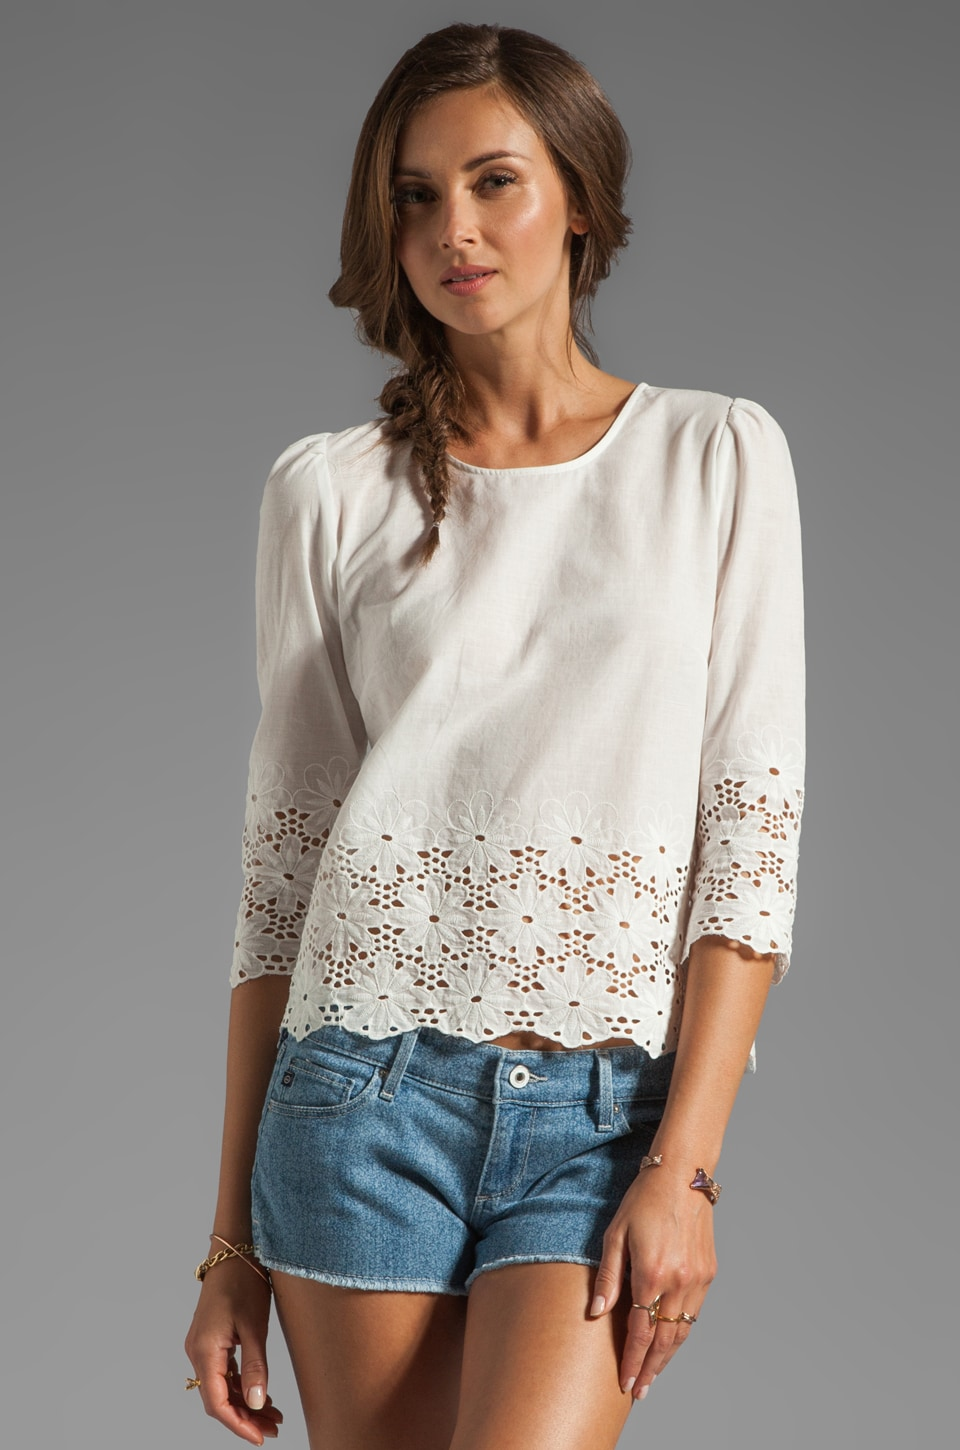 Dolce Vita Rosie-Leigh Hem Daisy Top in White